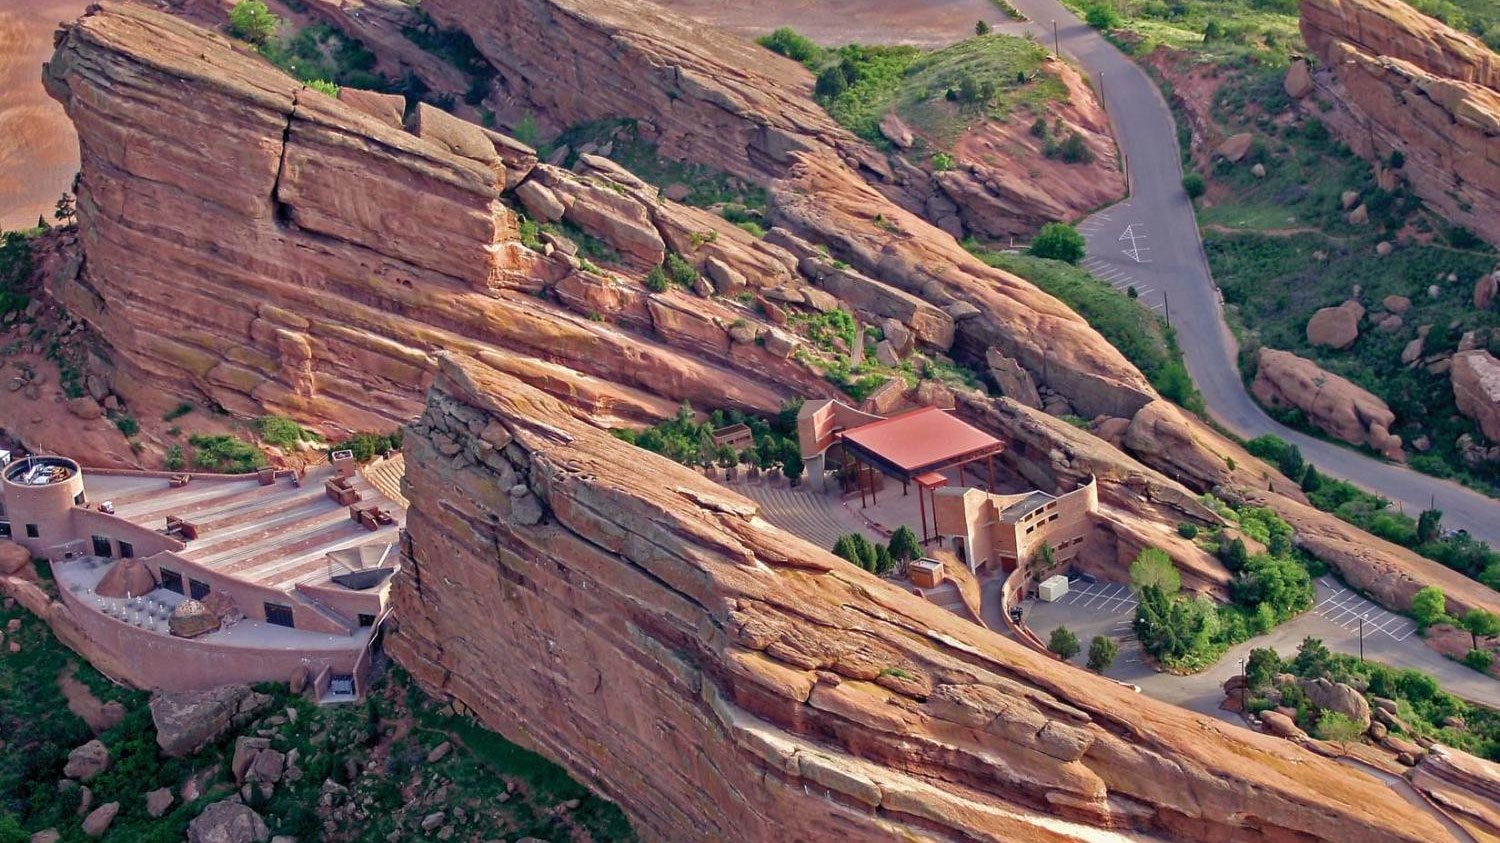 Aerial view of the Red Rocks Amphitheater in Denver